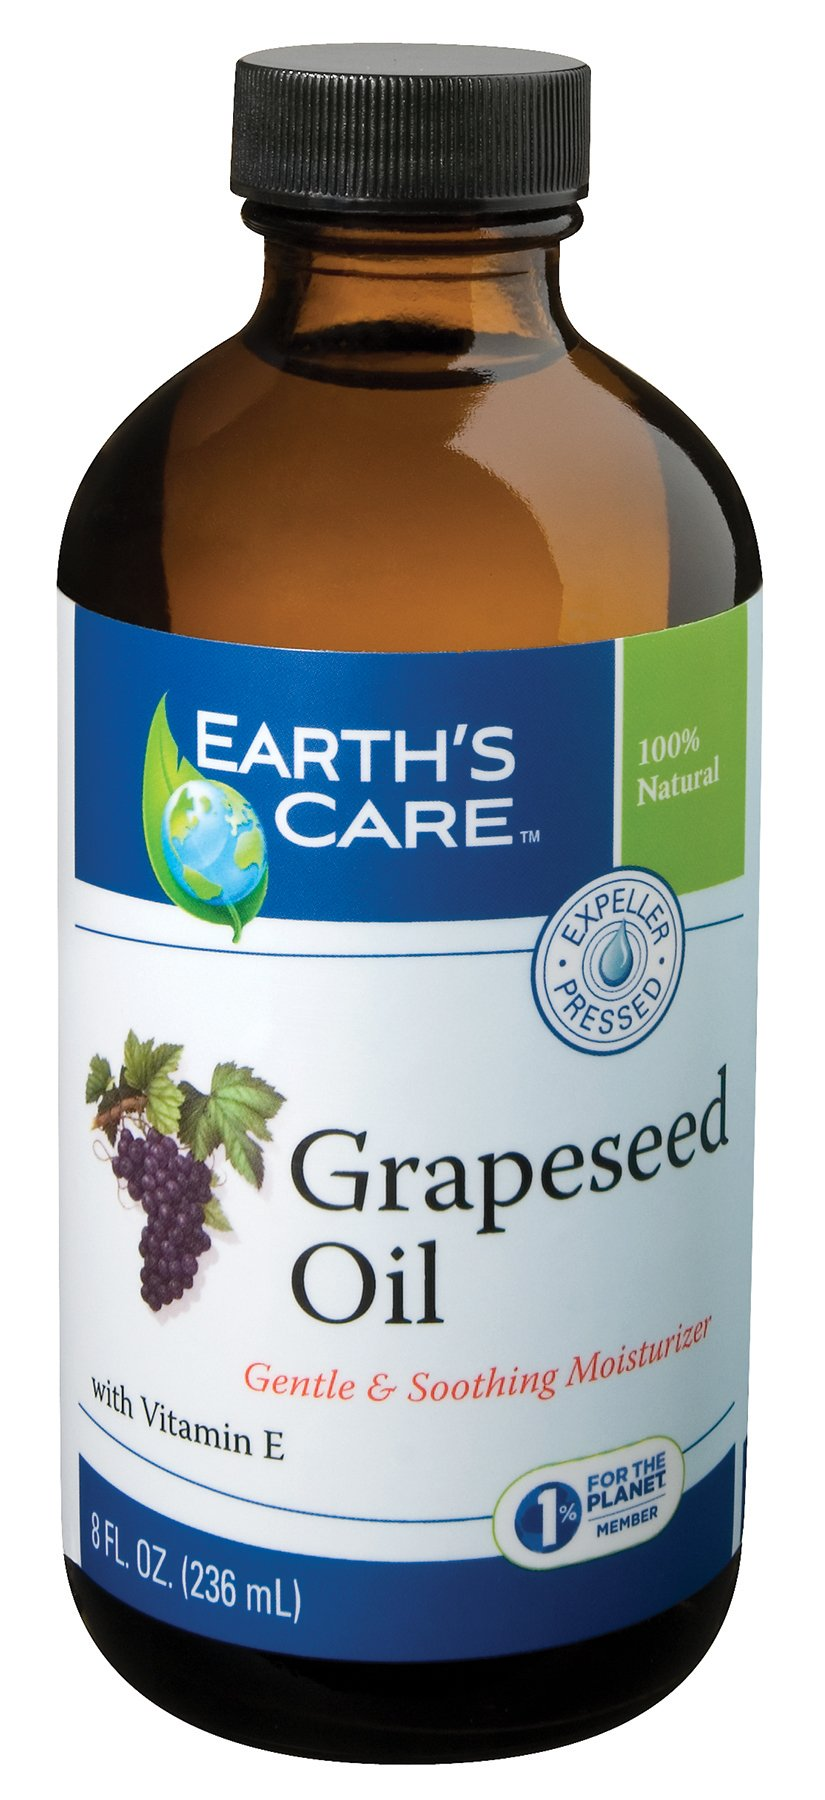 Earth's Care Grapeseed Oil, Hexane-Free, No Parabens, Fragrances or Artificial Colors 8 FL. OZ. (12 Bottles)